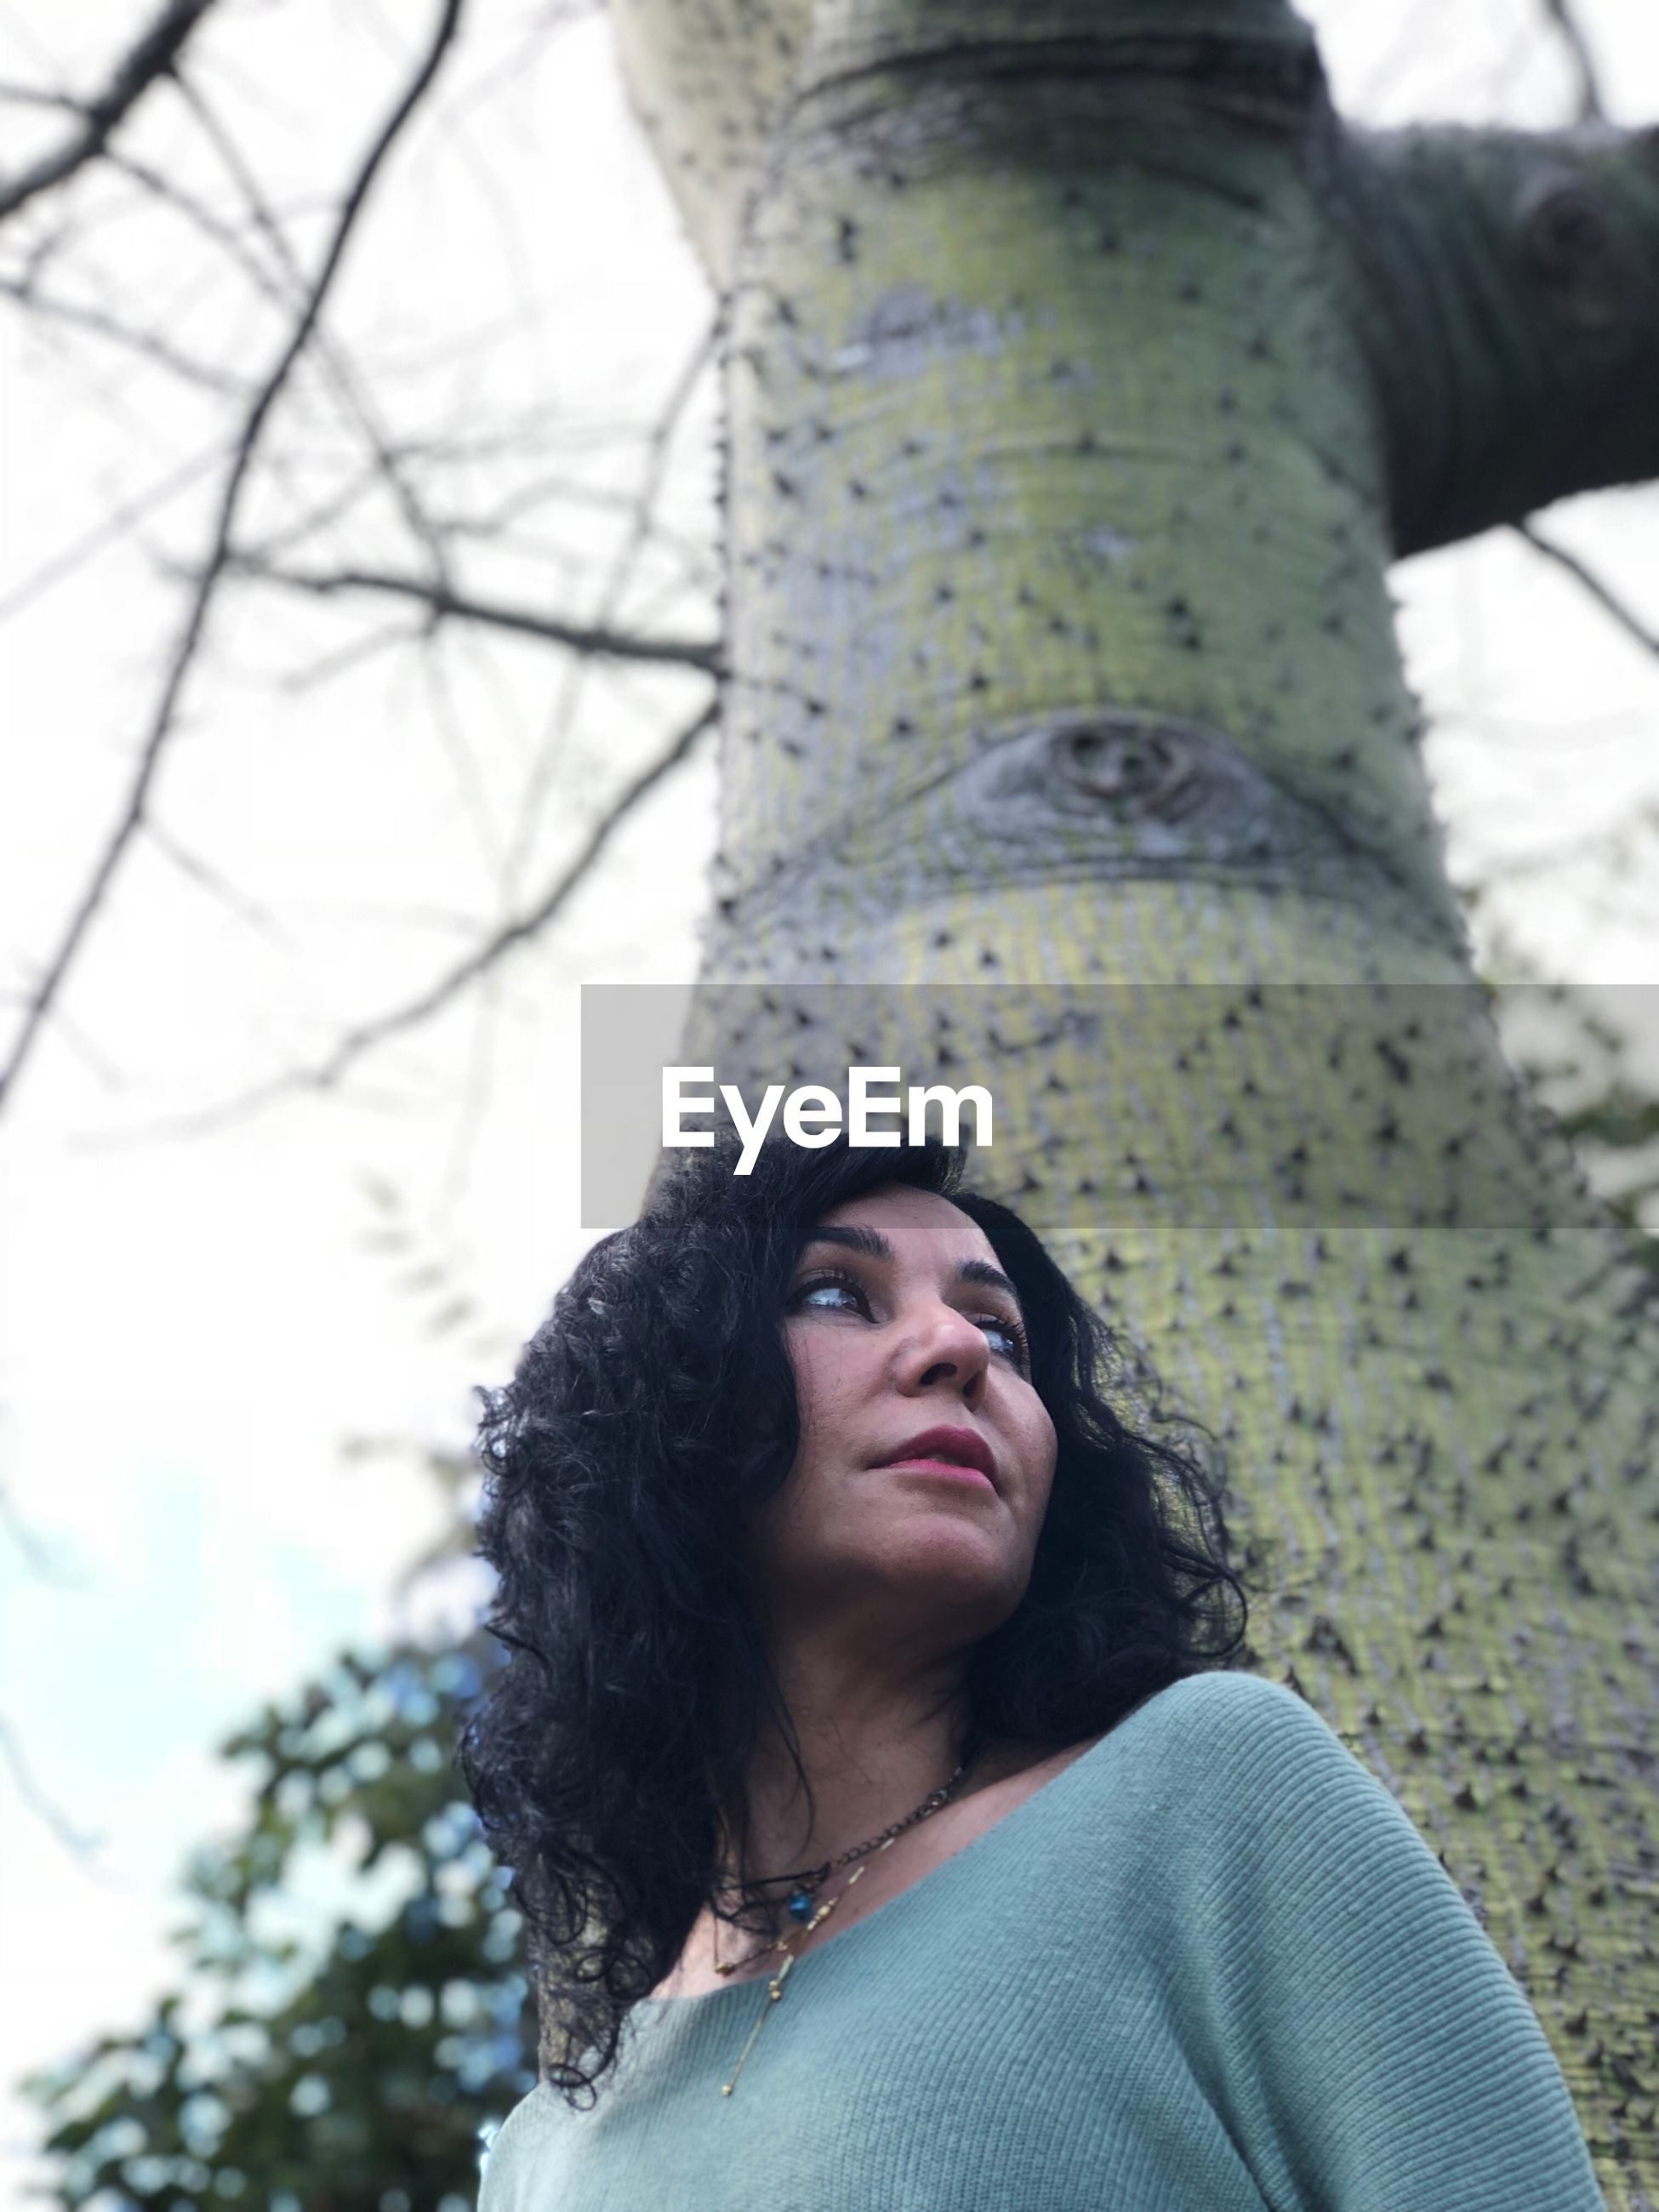 Low angle view of woman against tree trunk